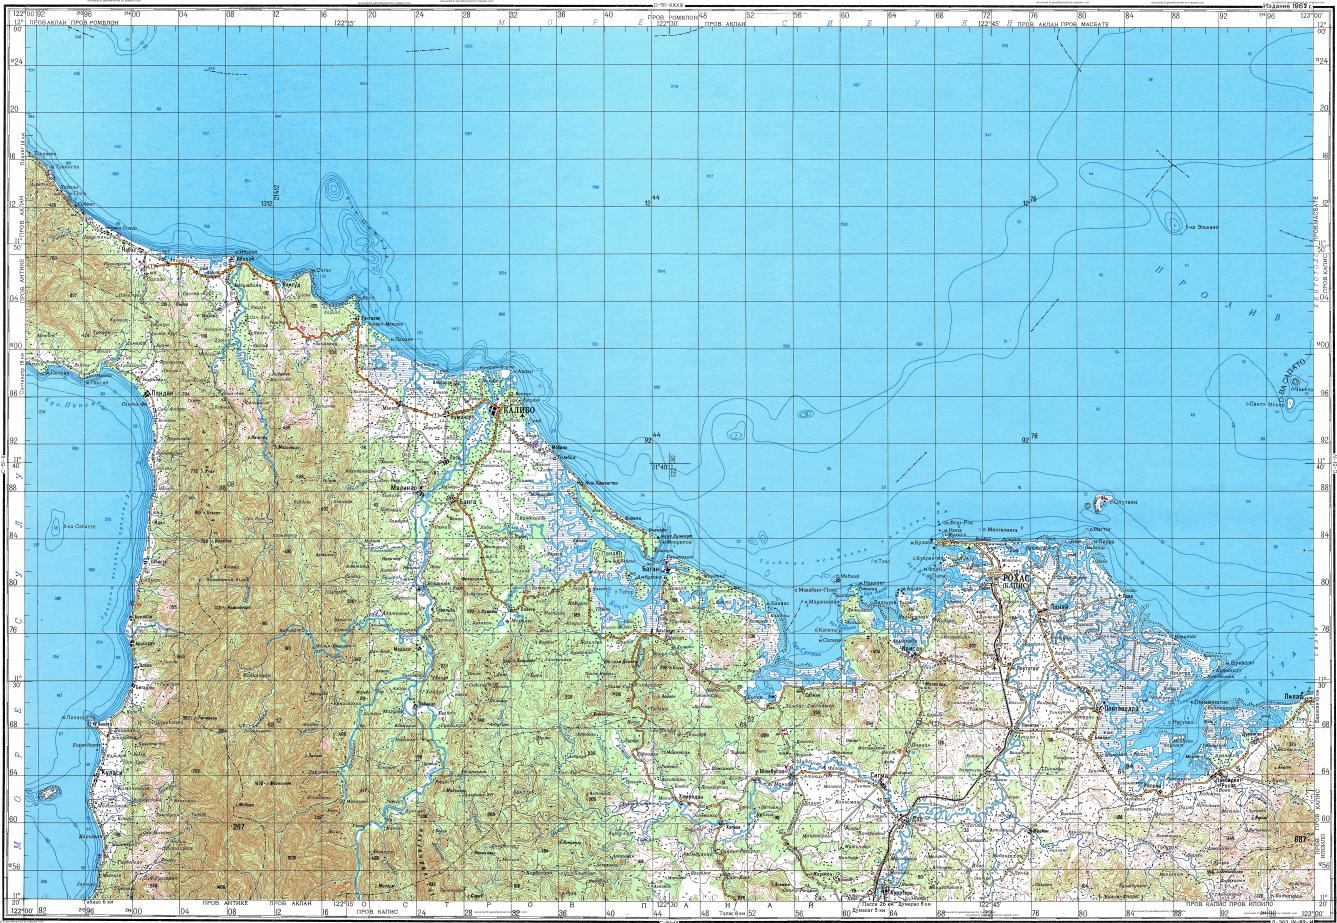 Download Topographic Map In Area Of Roxas Panay Hipona Mapstorcom - Roxas map